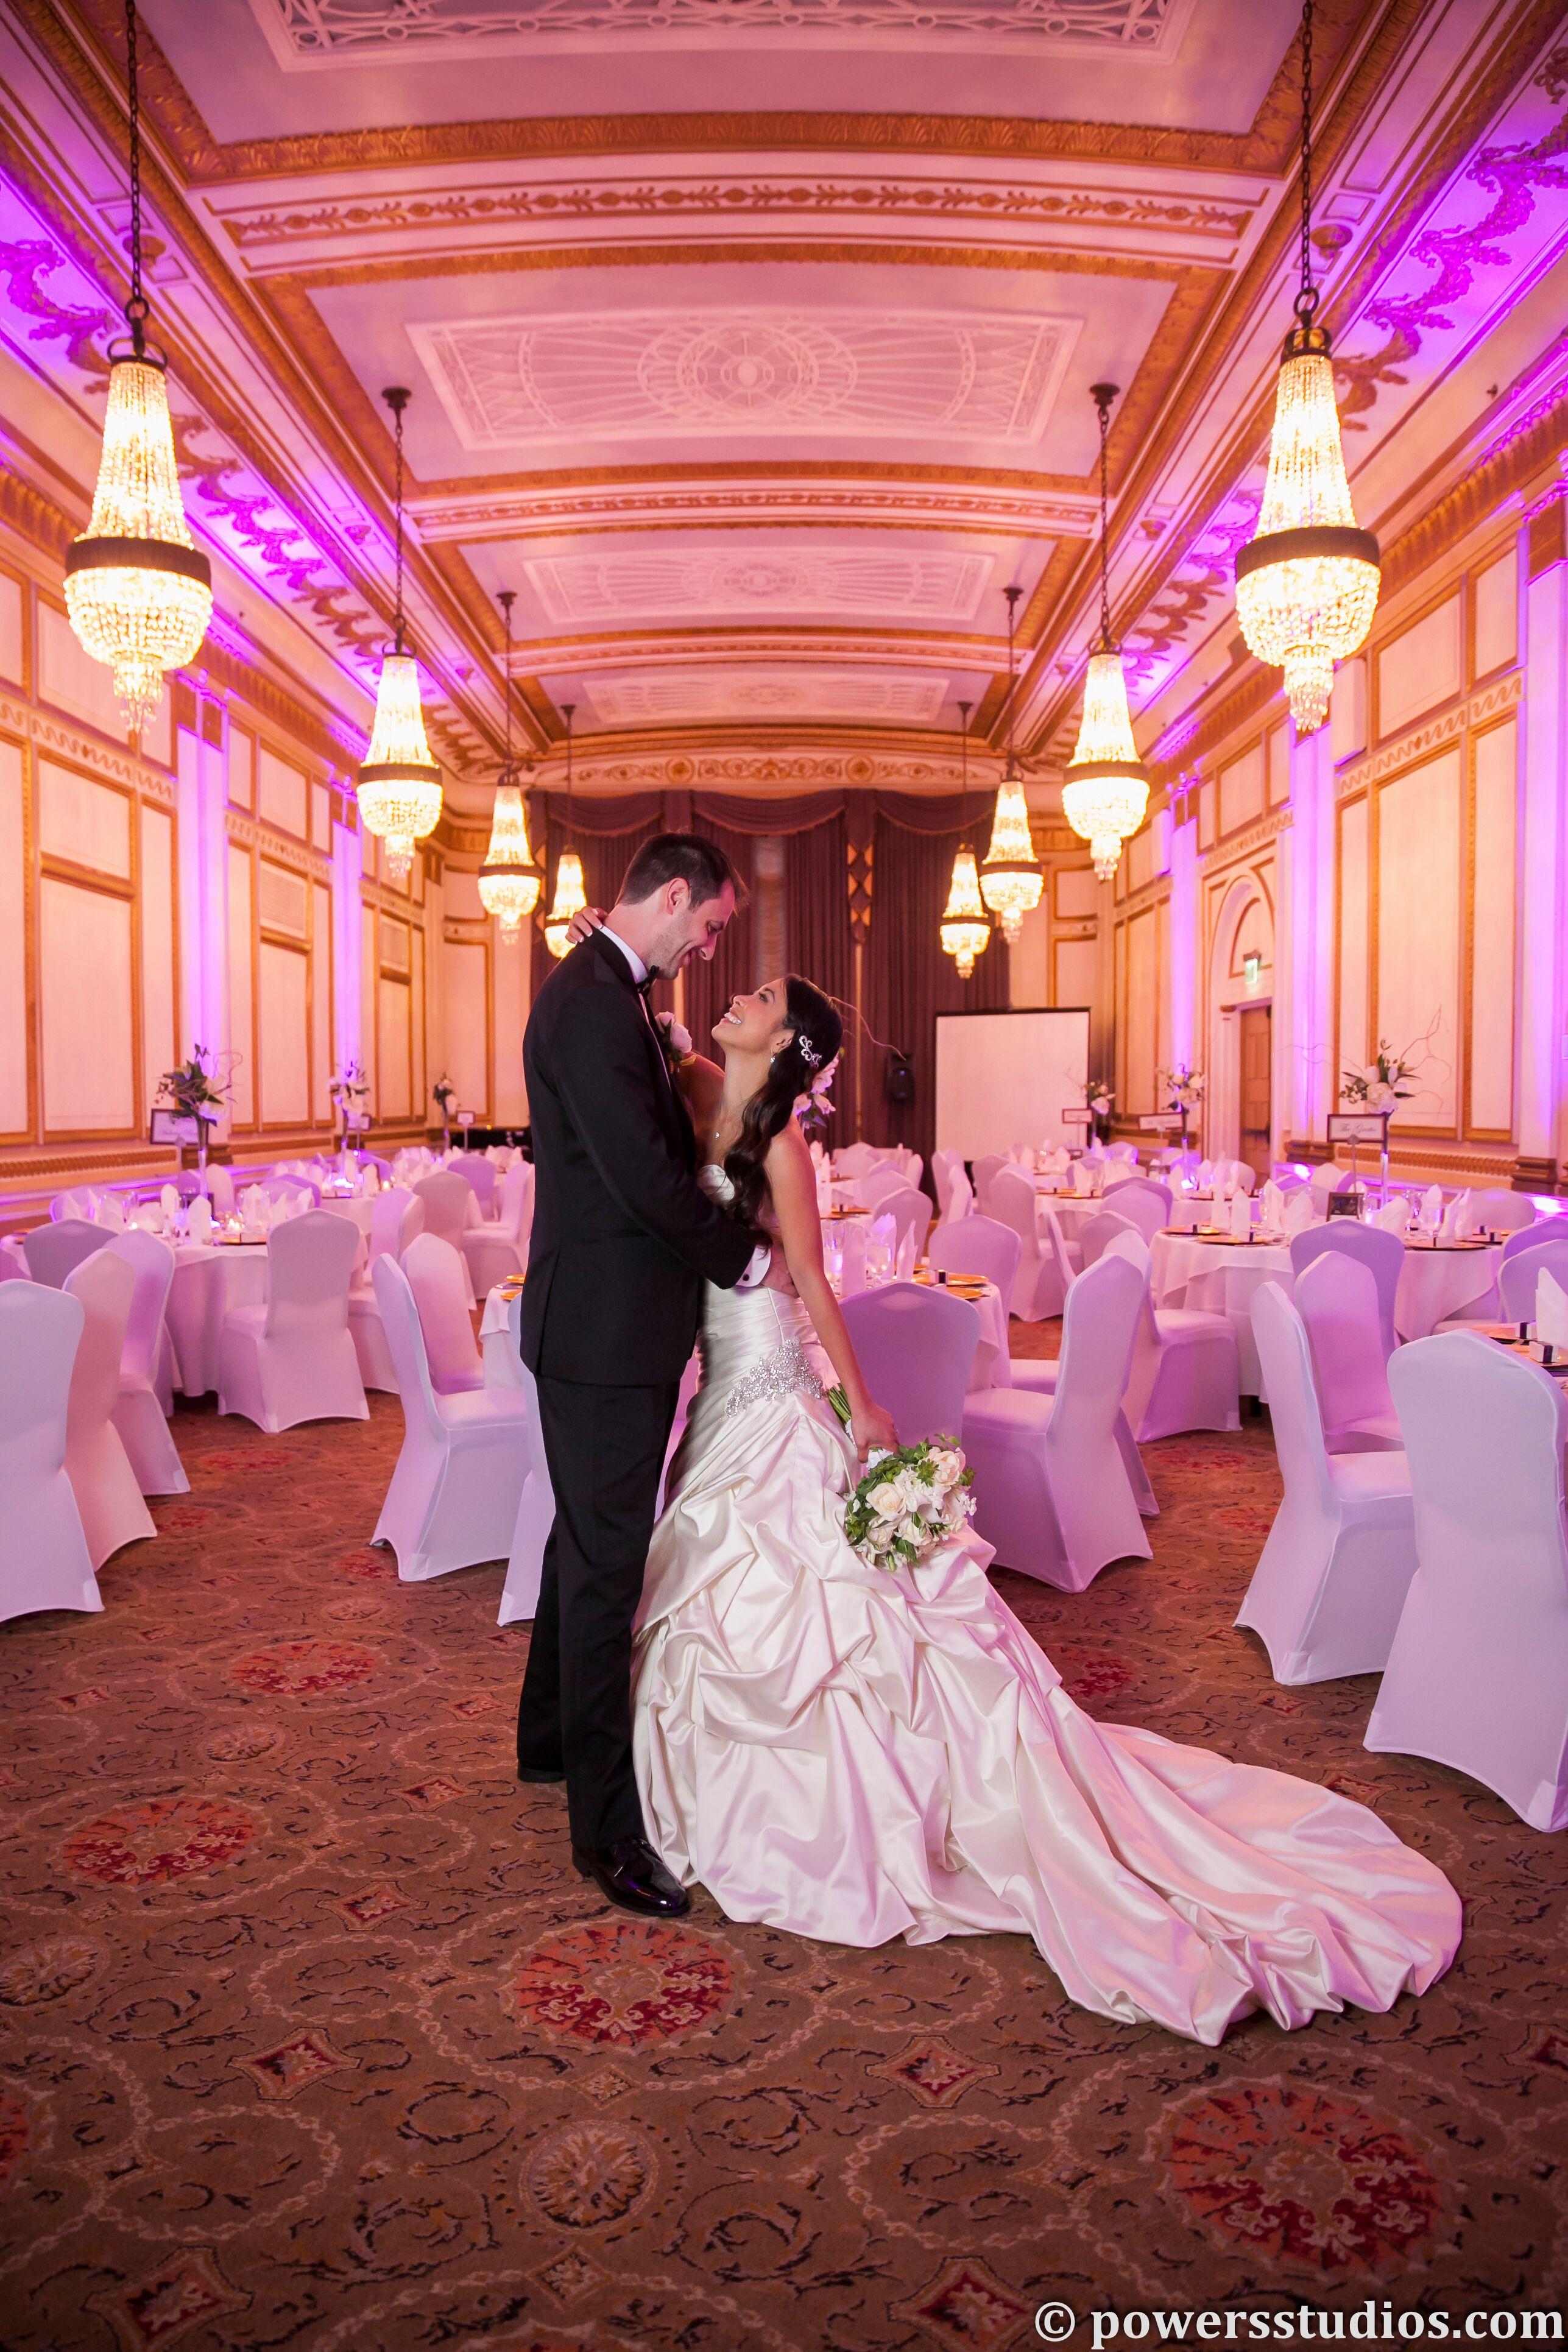 Wedding Reception Venues Portland Maine Image Collections In Or The Knot